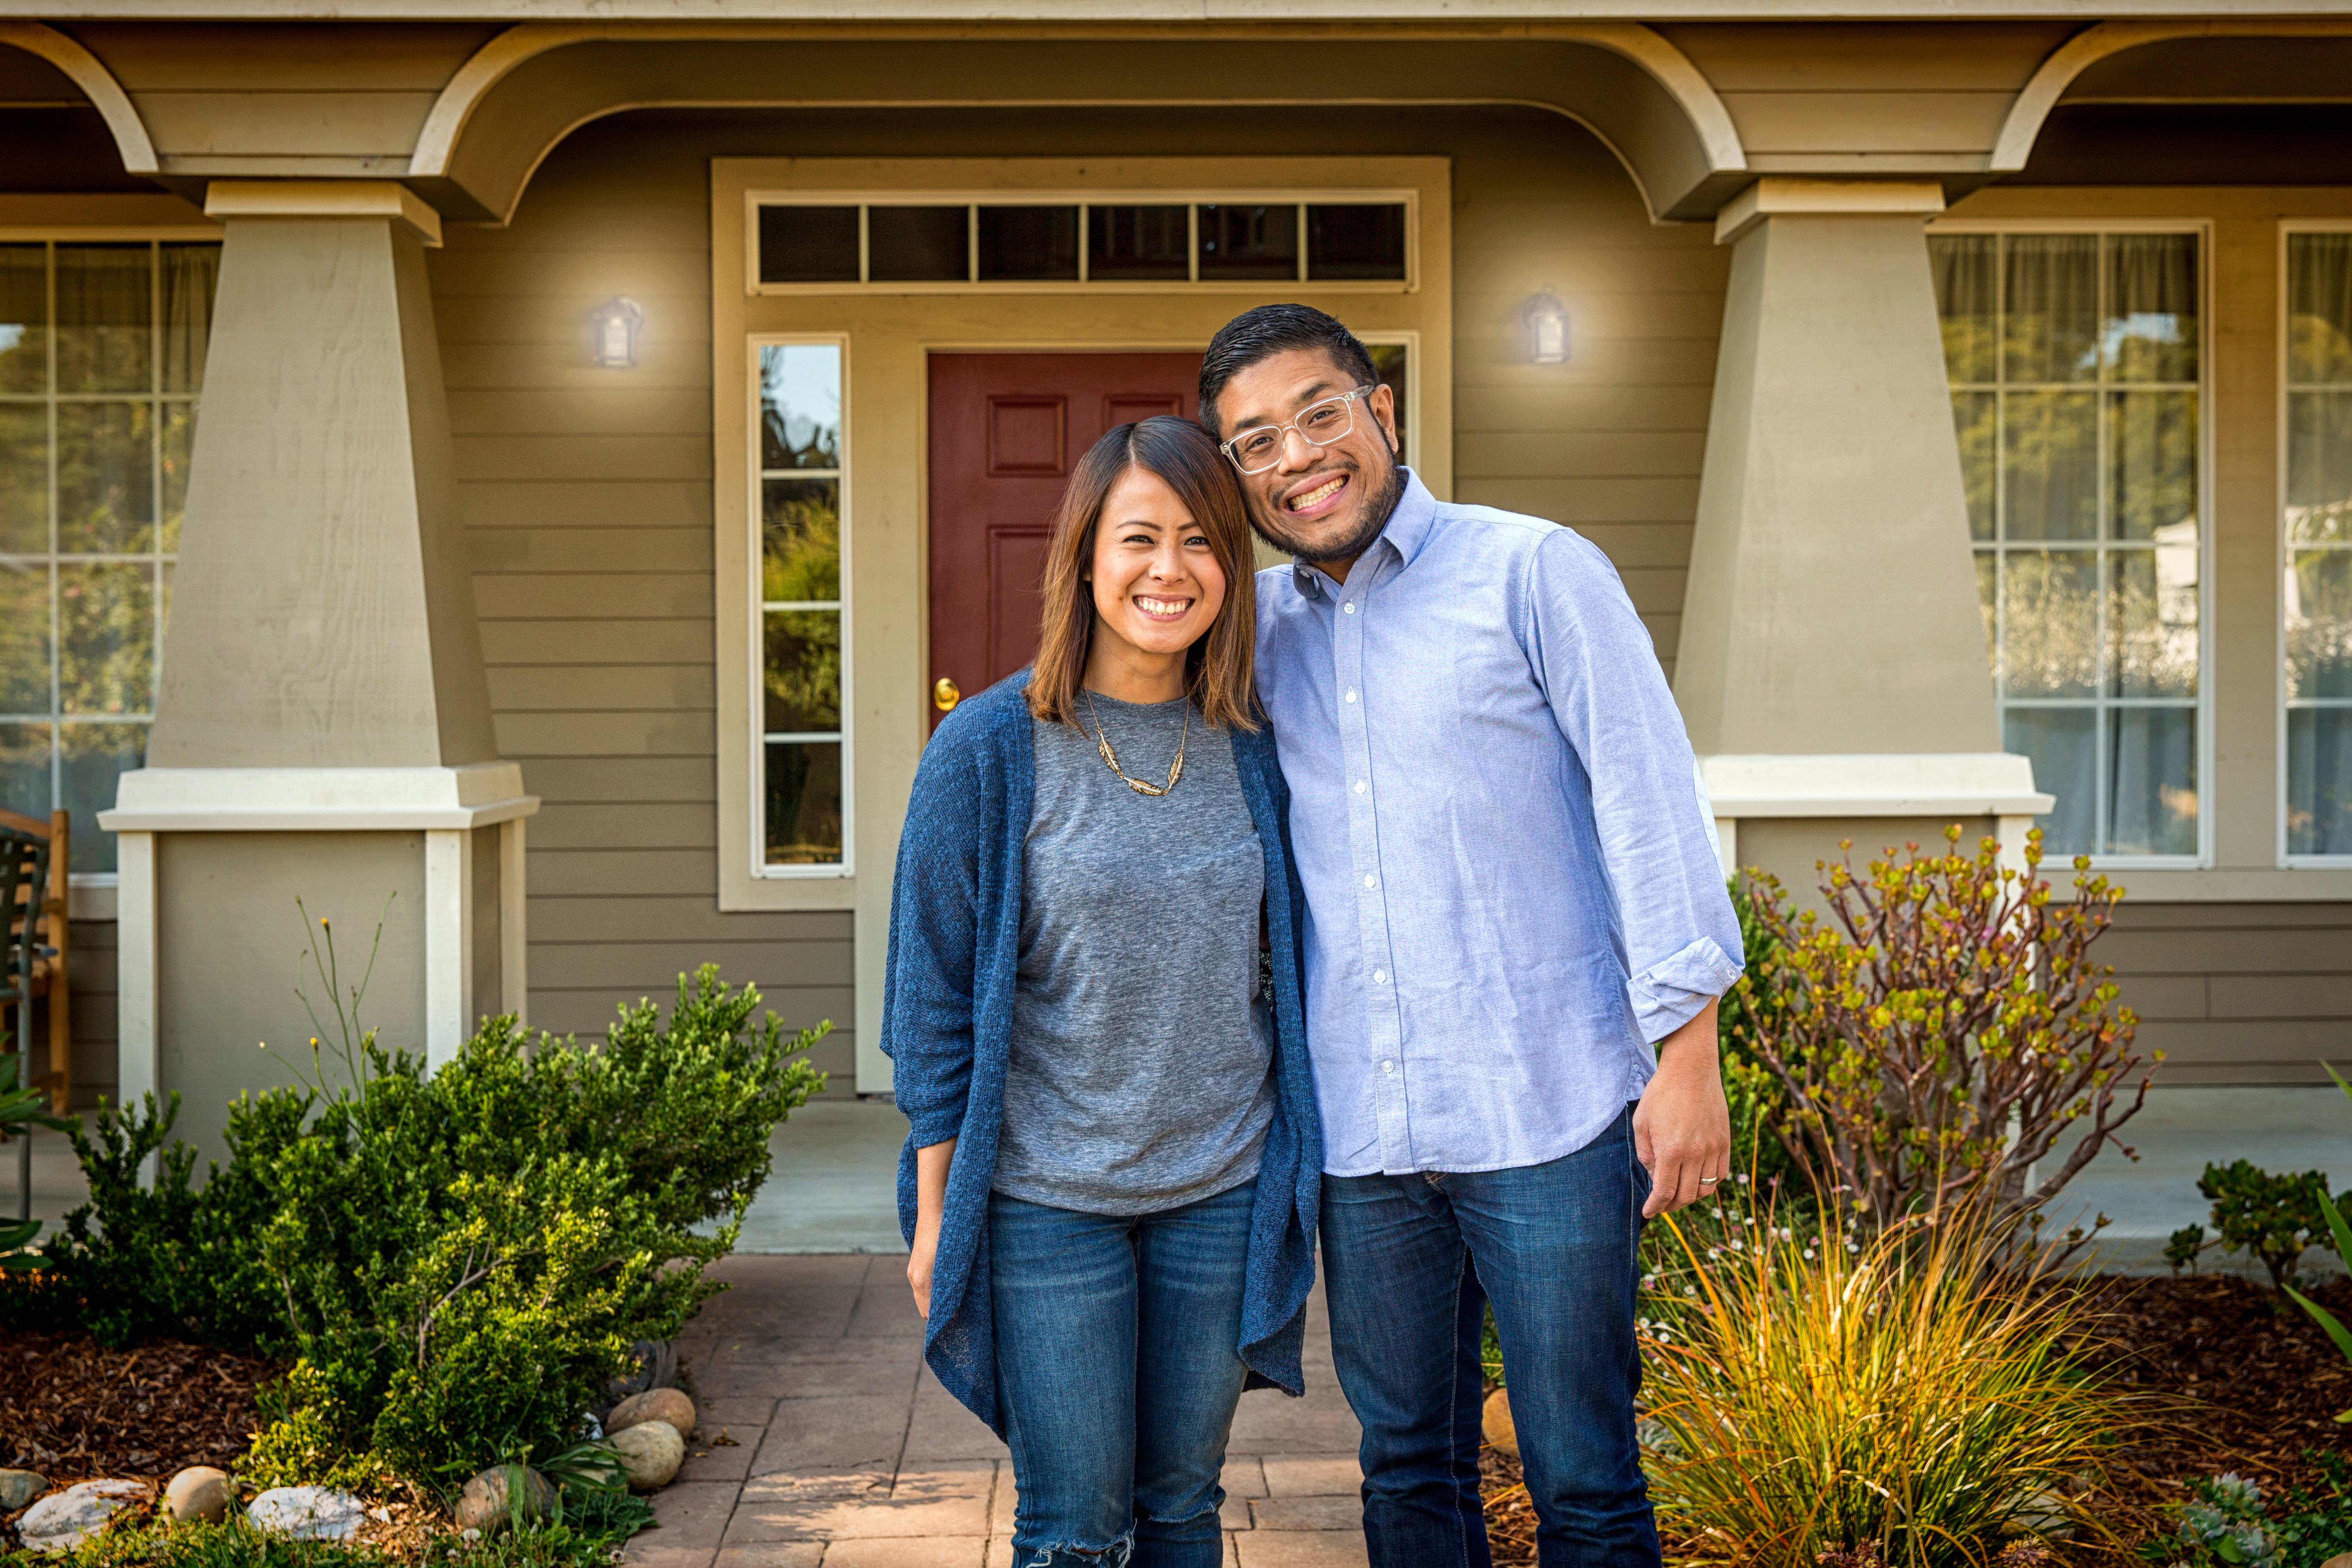 Is Fall the Best Time to Buy a House?